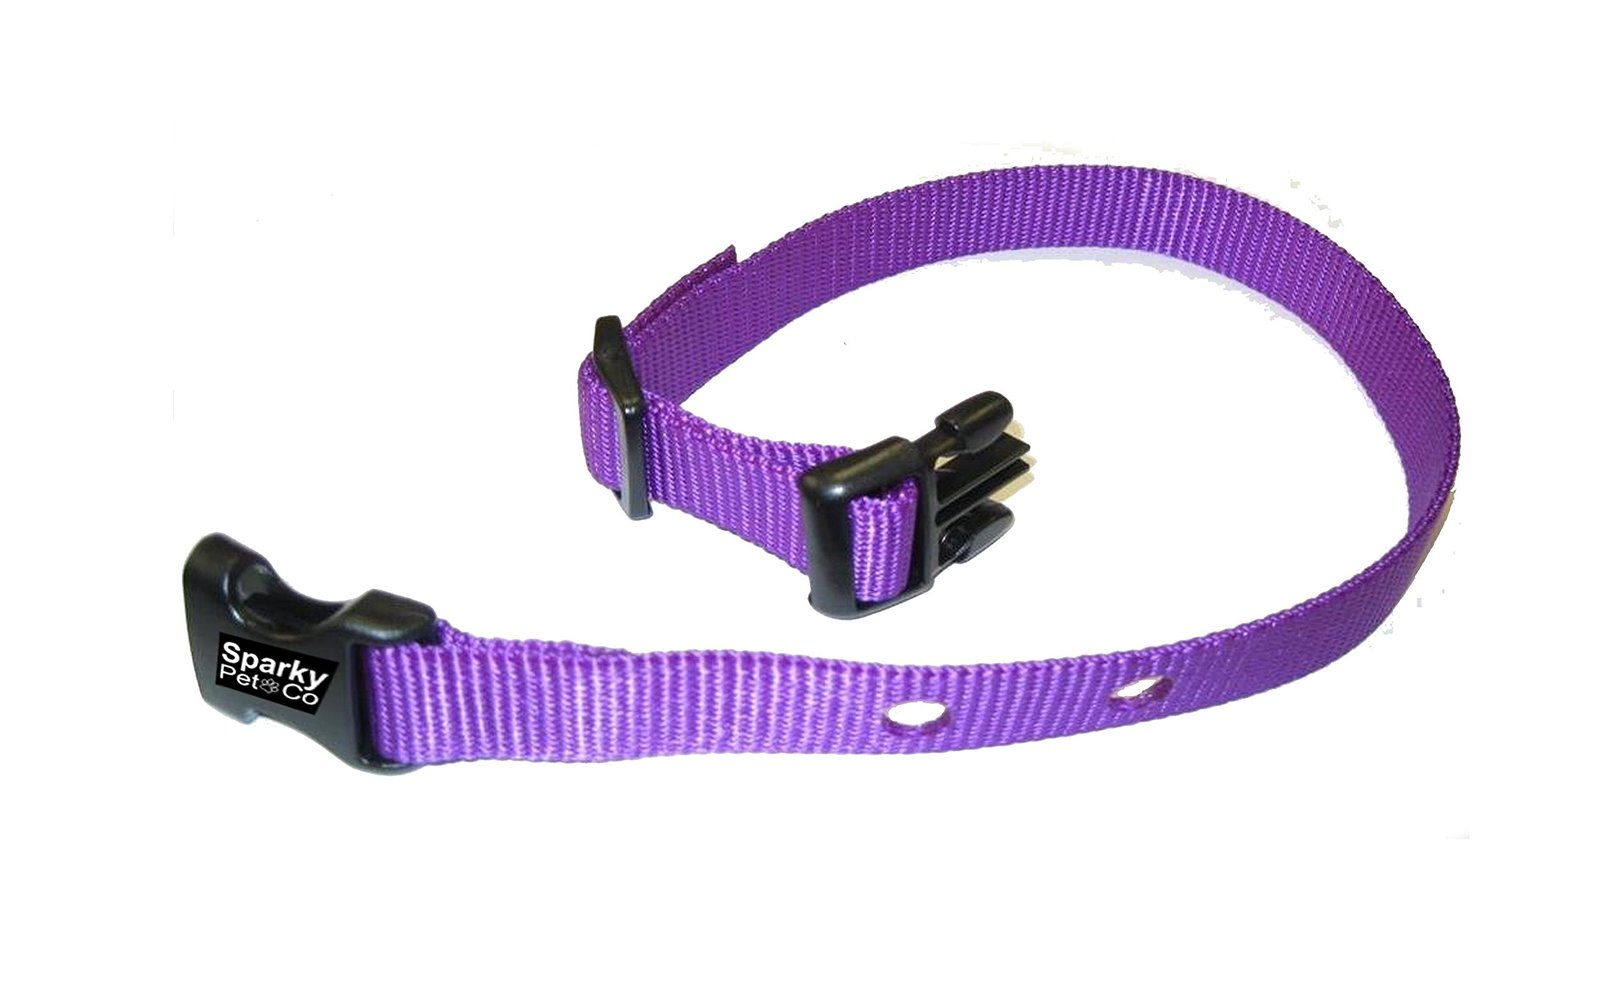 "Sparky PetCo PetSafe Compatible Replacement Strap with holes 1.25"" Apart, Purple"